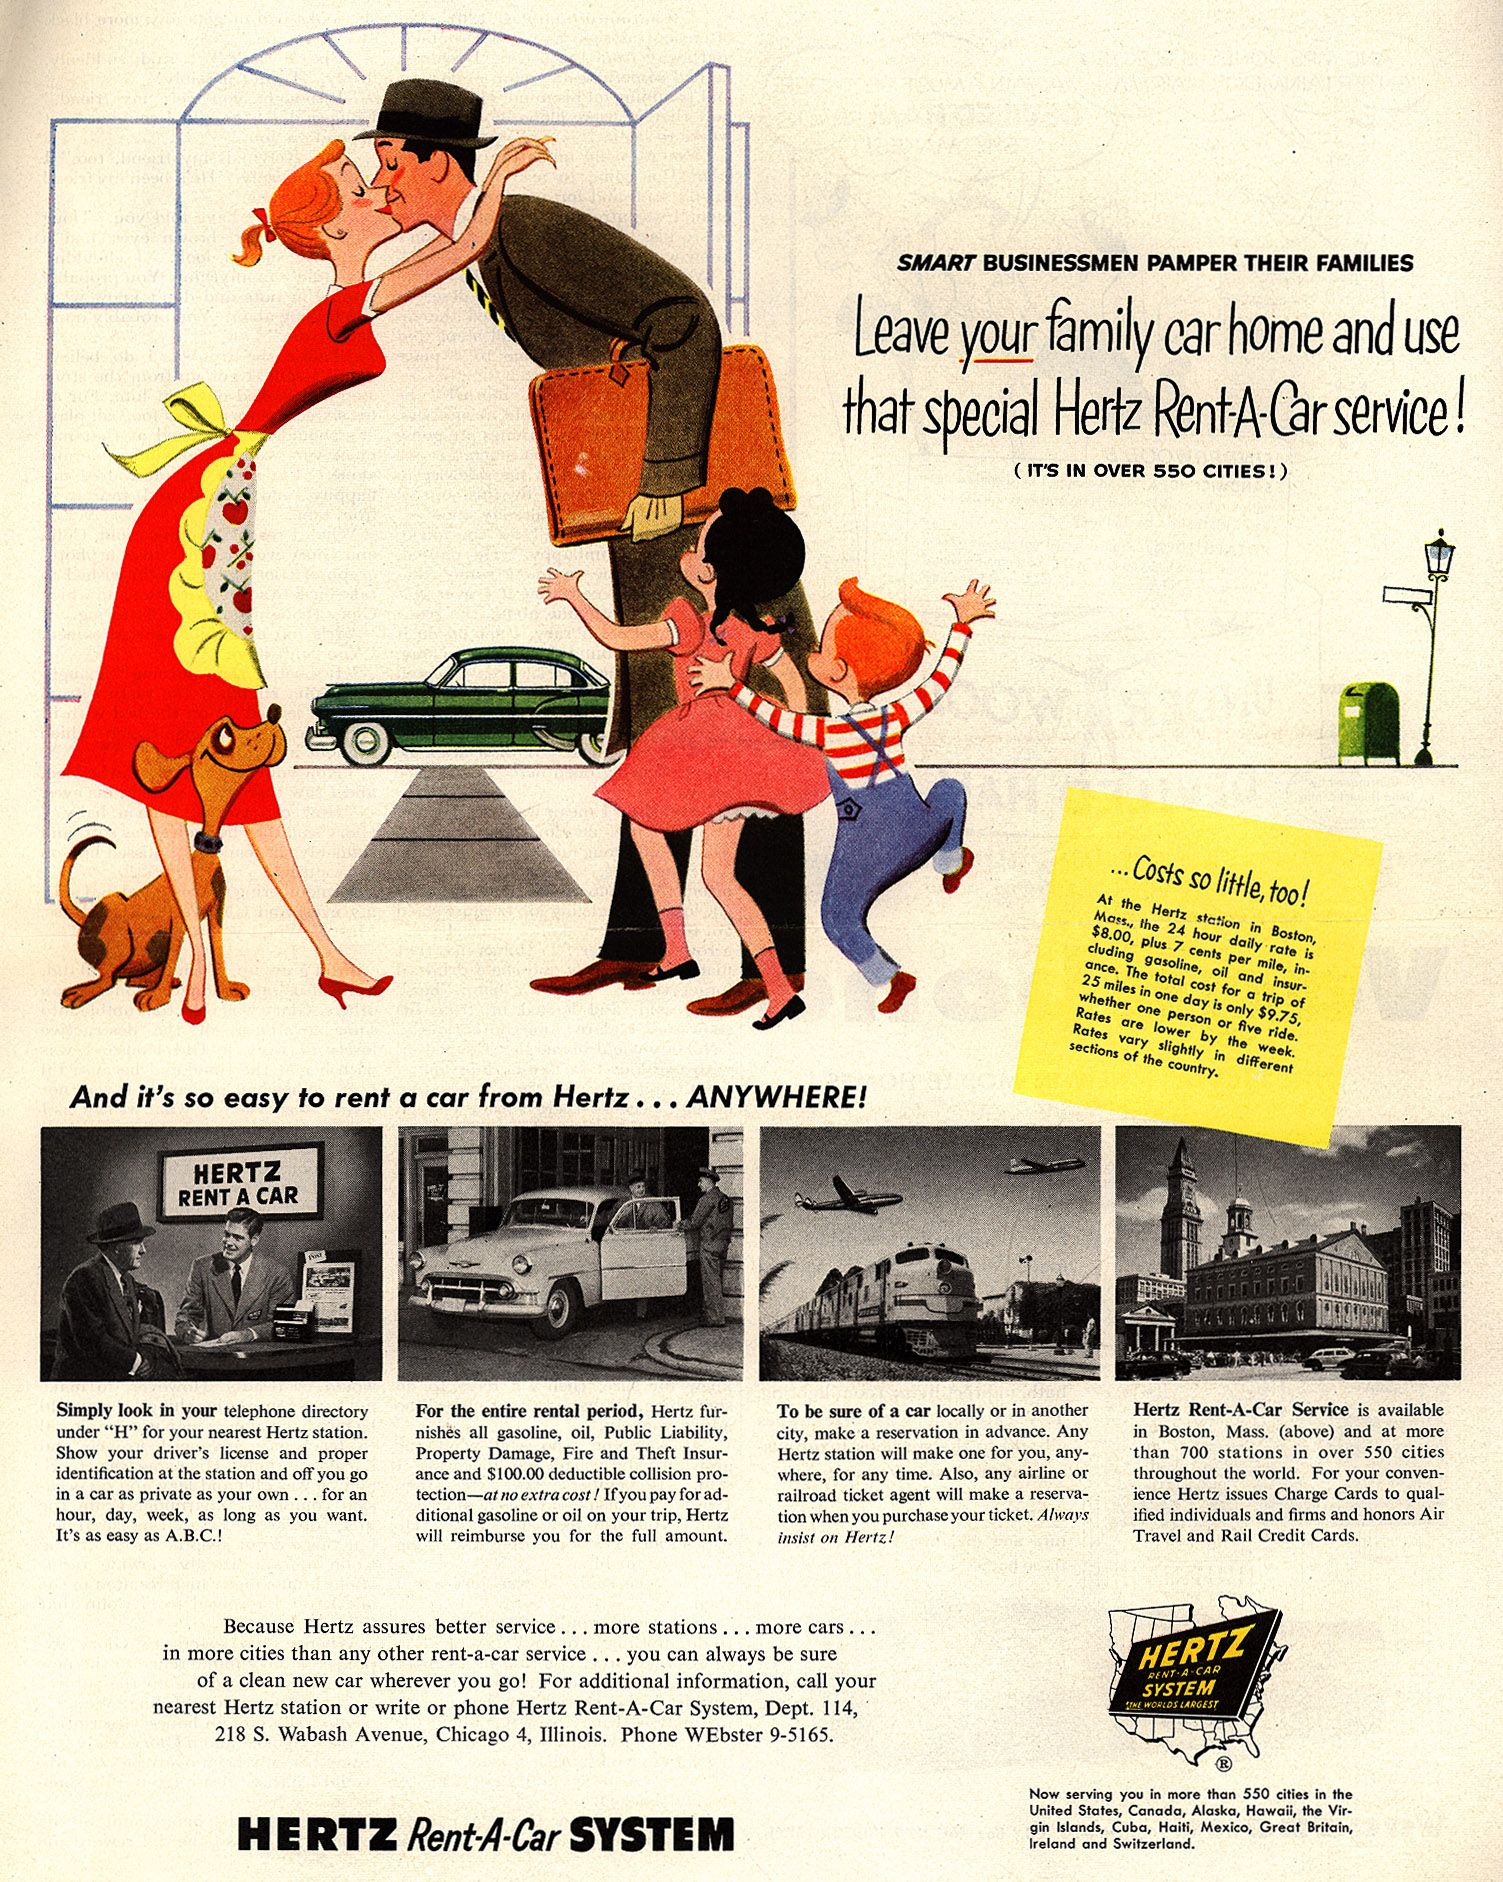 Miles And More Car Rental Hertz Car Rental Ads From The 1950s 1950s Advertising